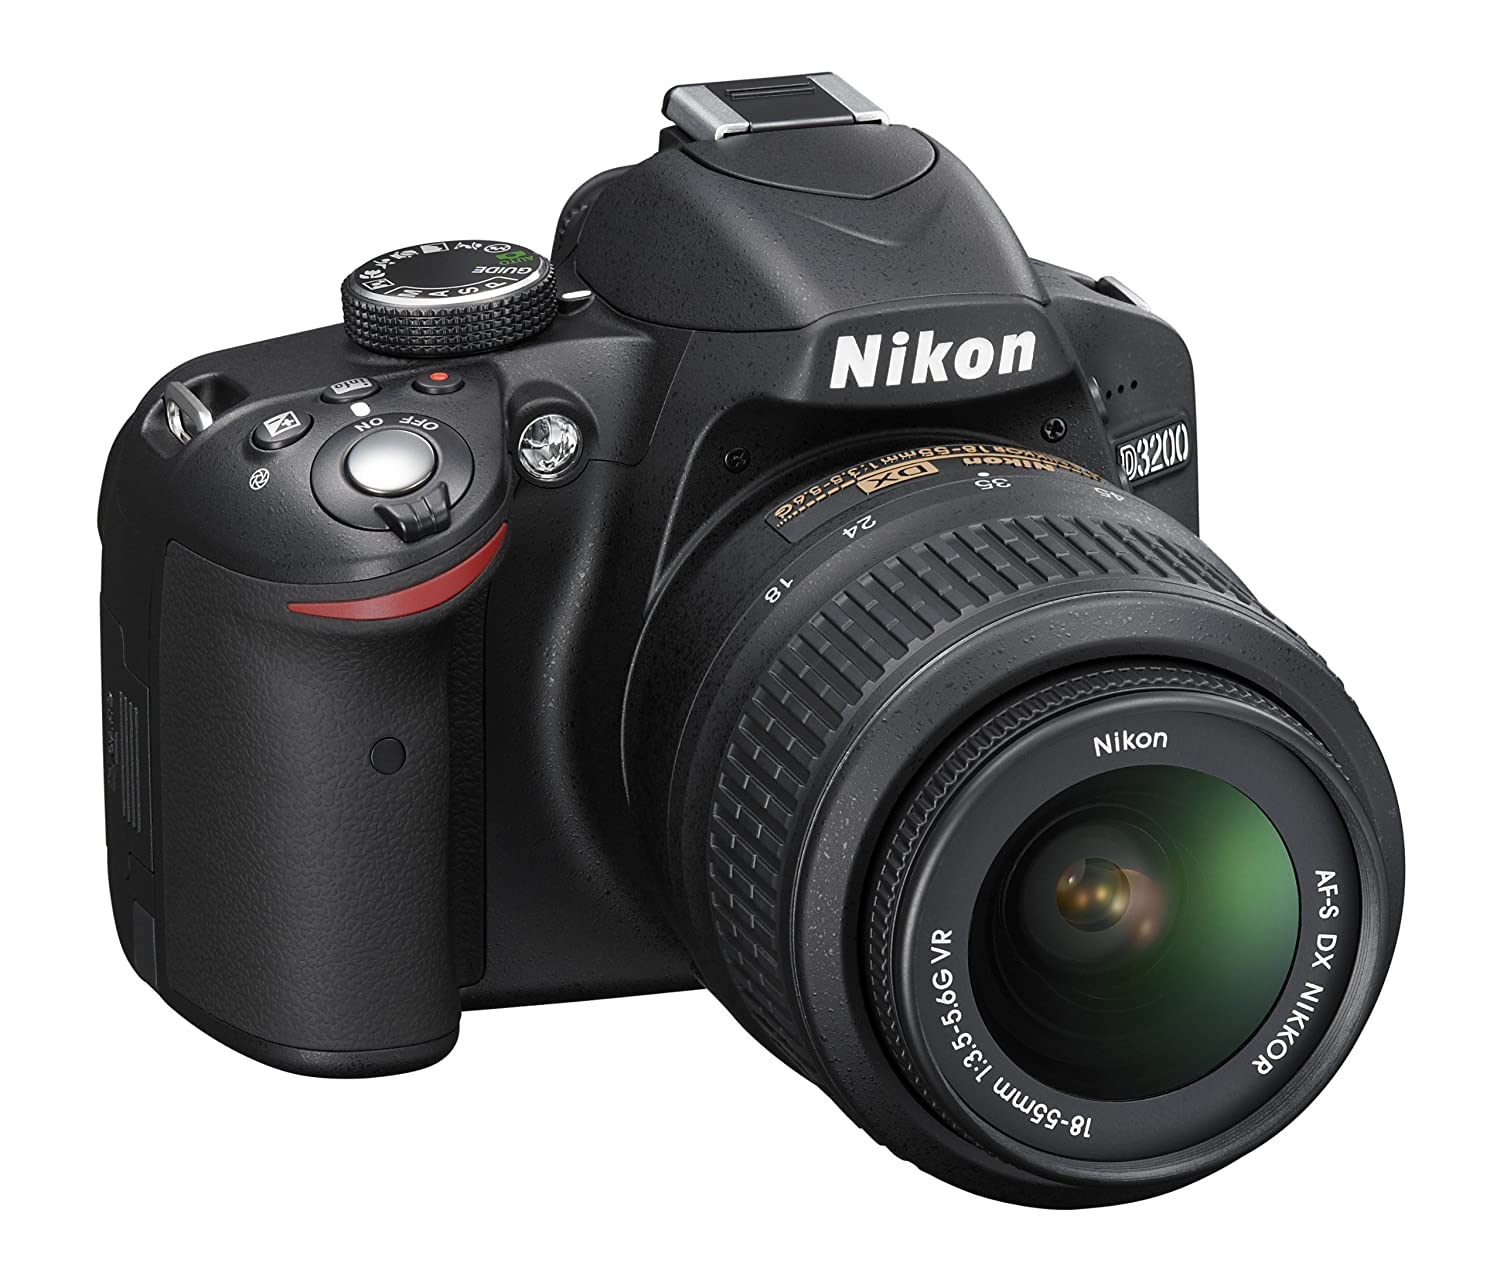 Amazon.com : Nikon D3200 24.2 MP CMOS Digital SLR with 18-55mm f ...